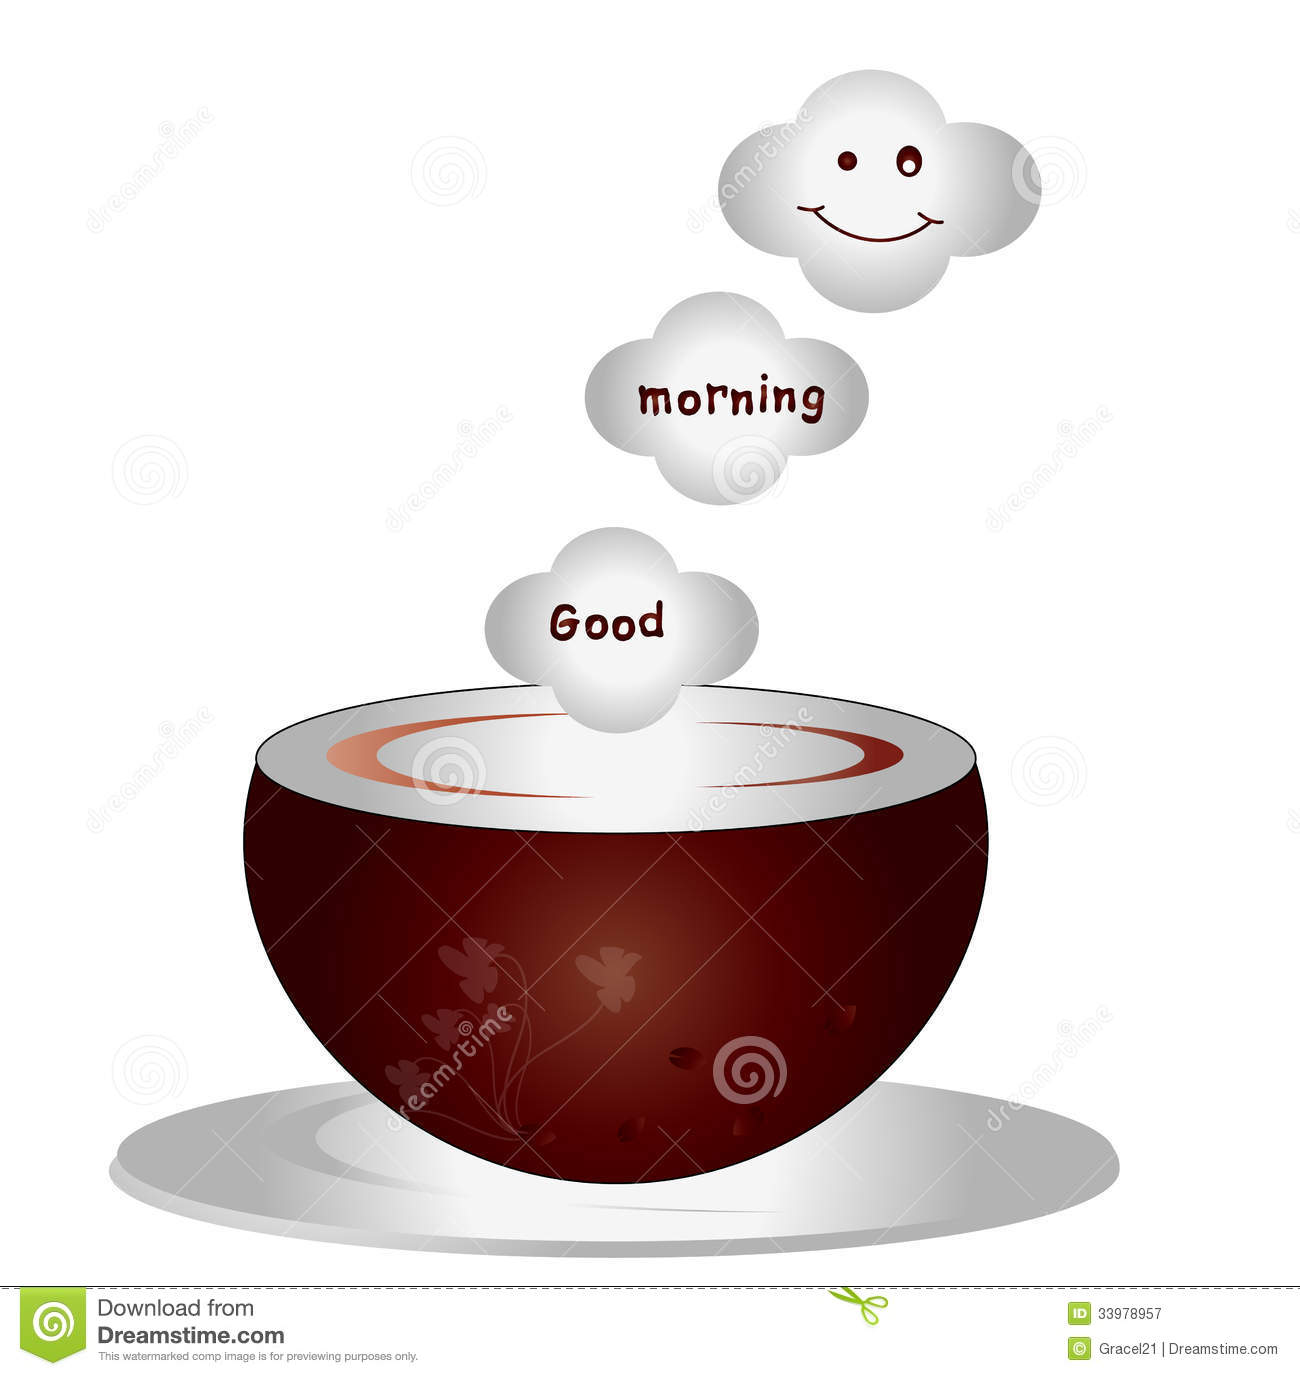 Good Morning stock vector. Illustration of concept, decoration ...